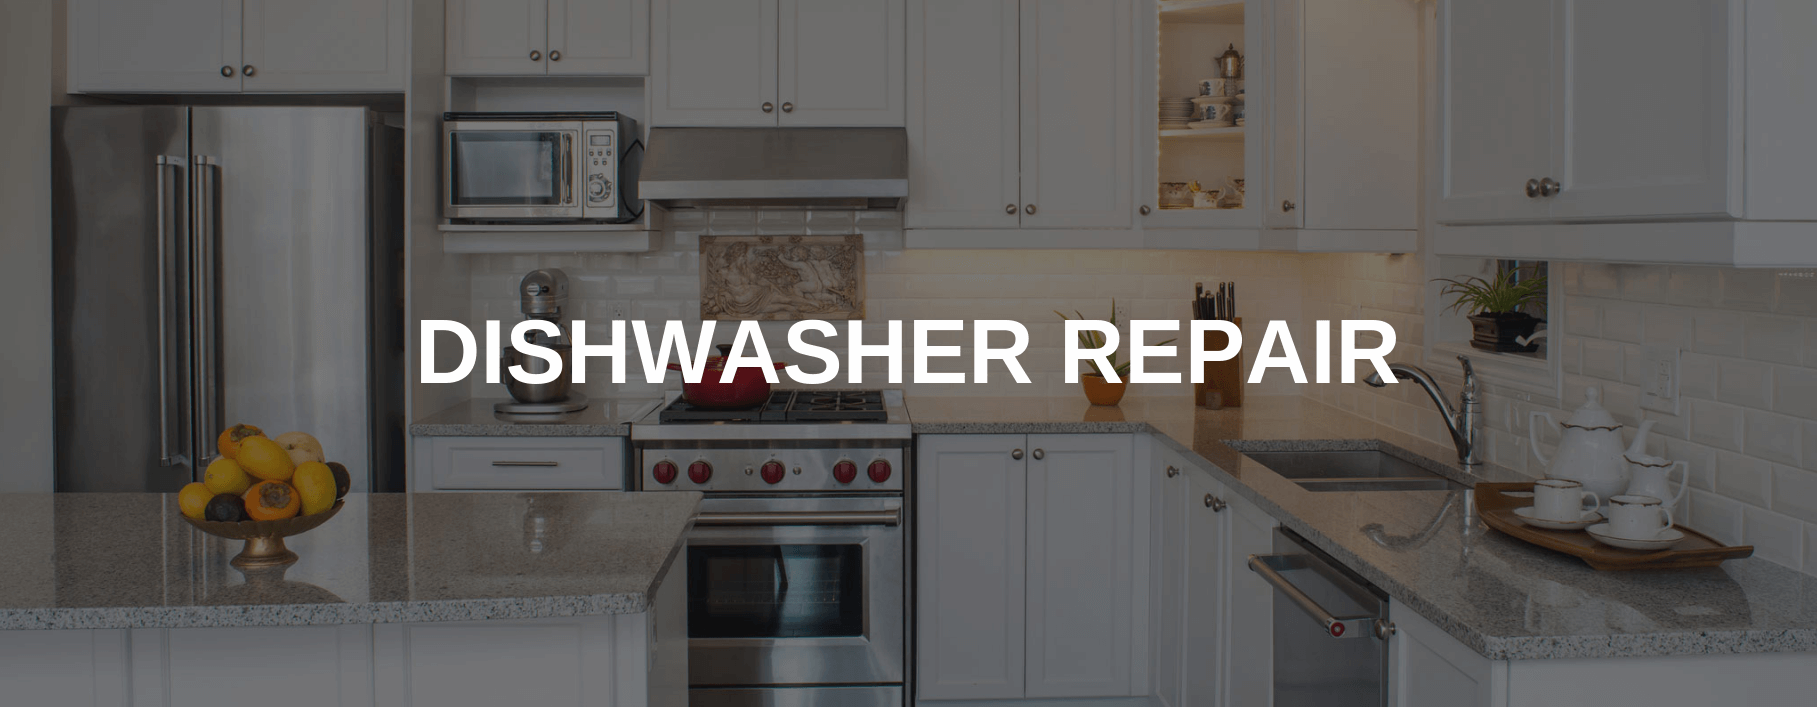 dishwasher repair union city